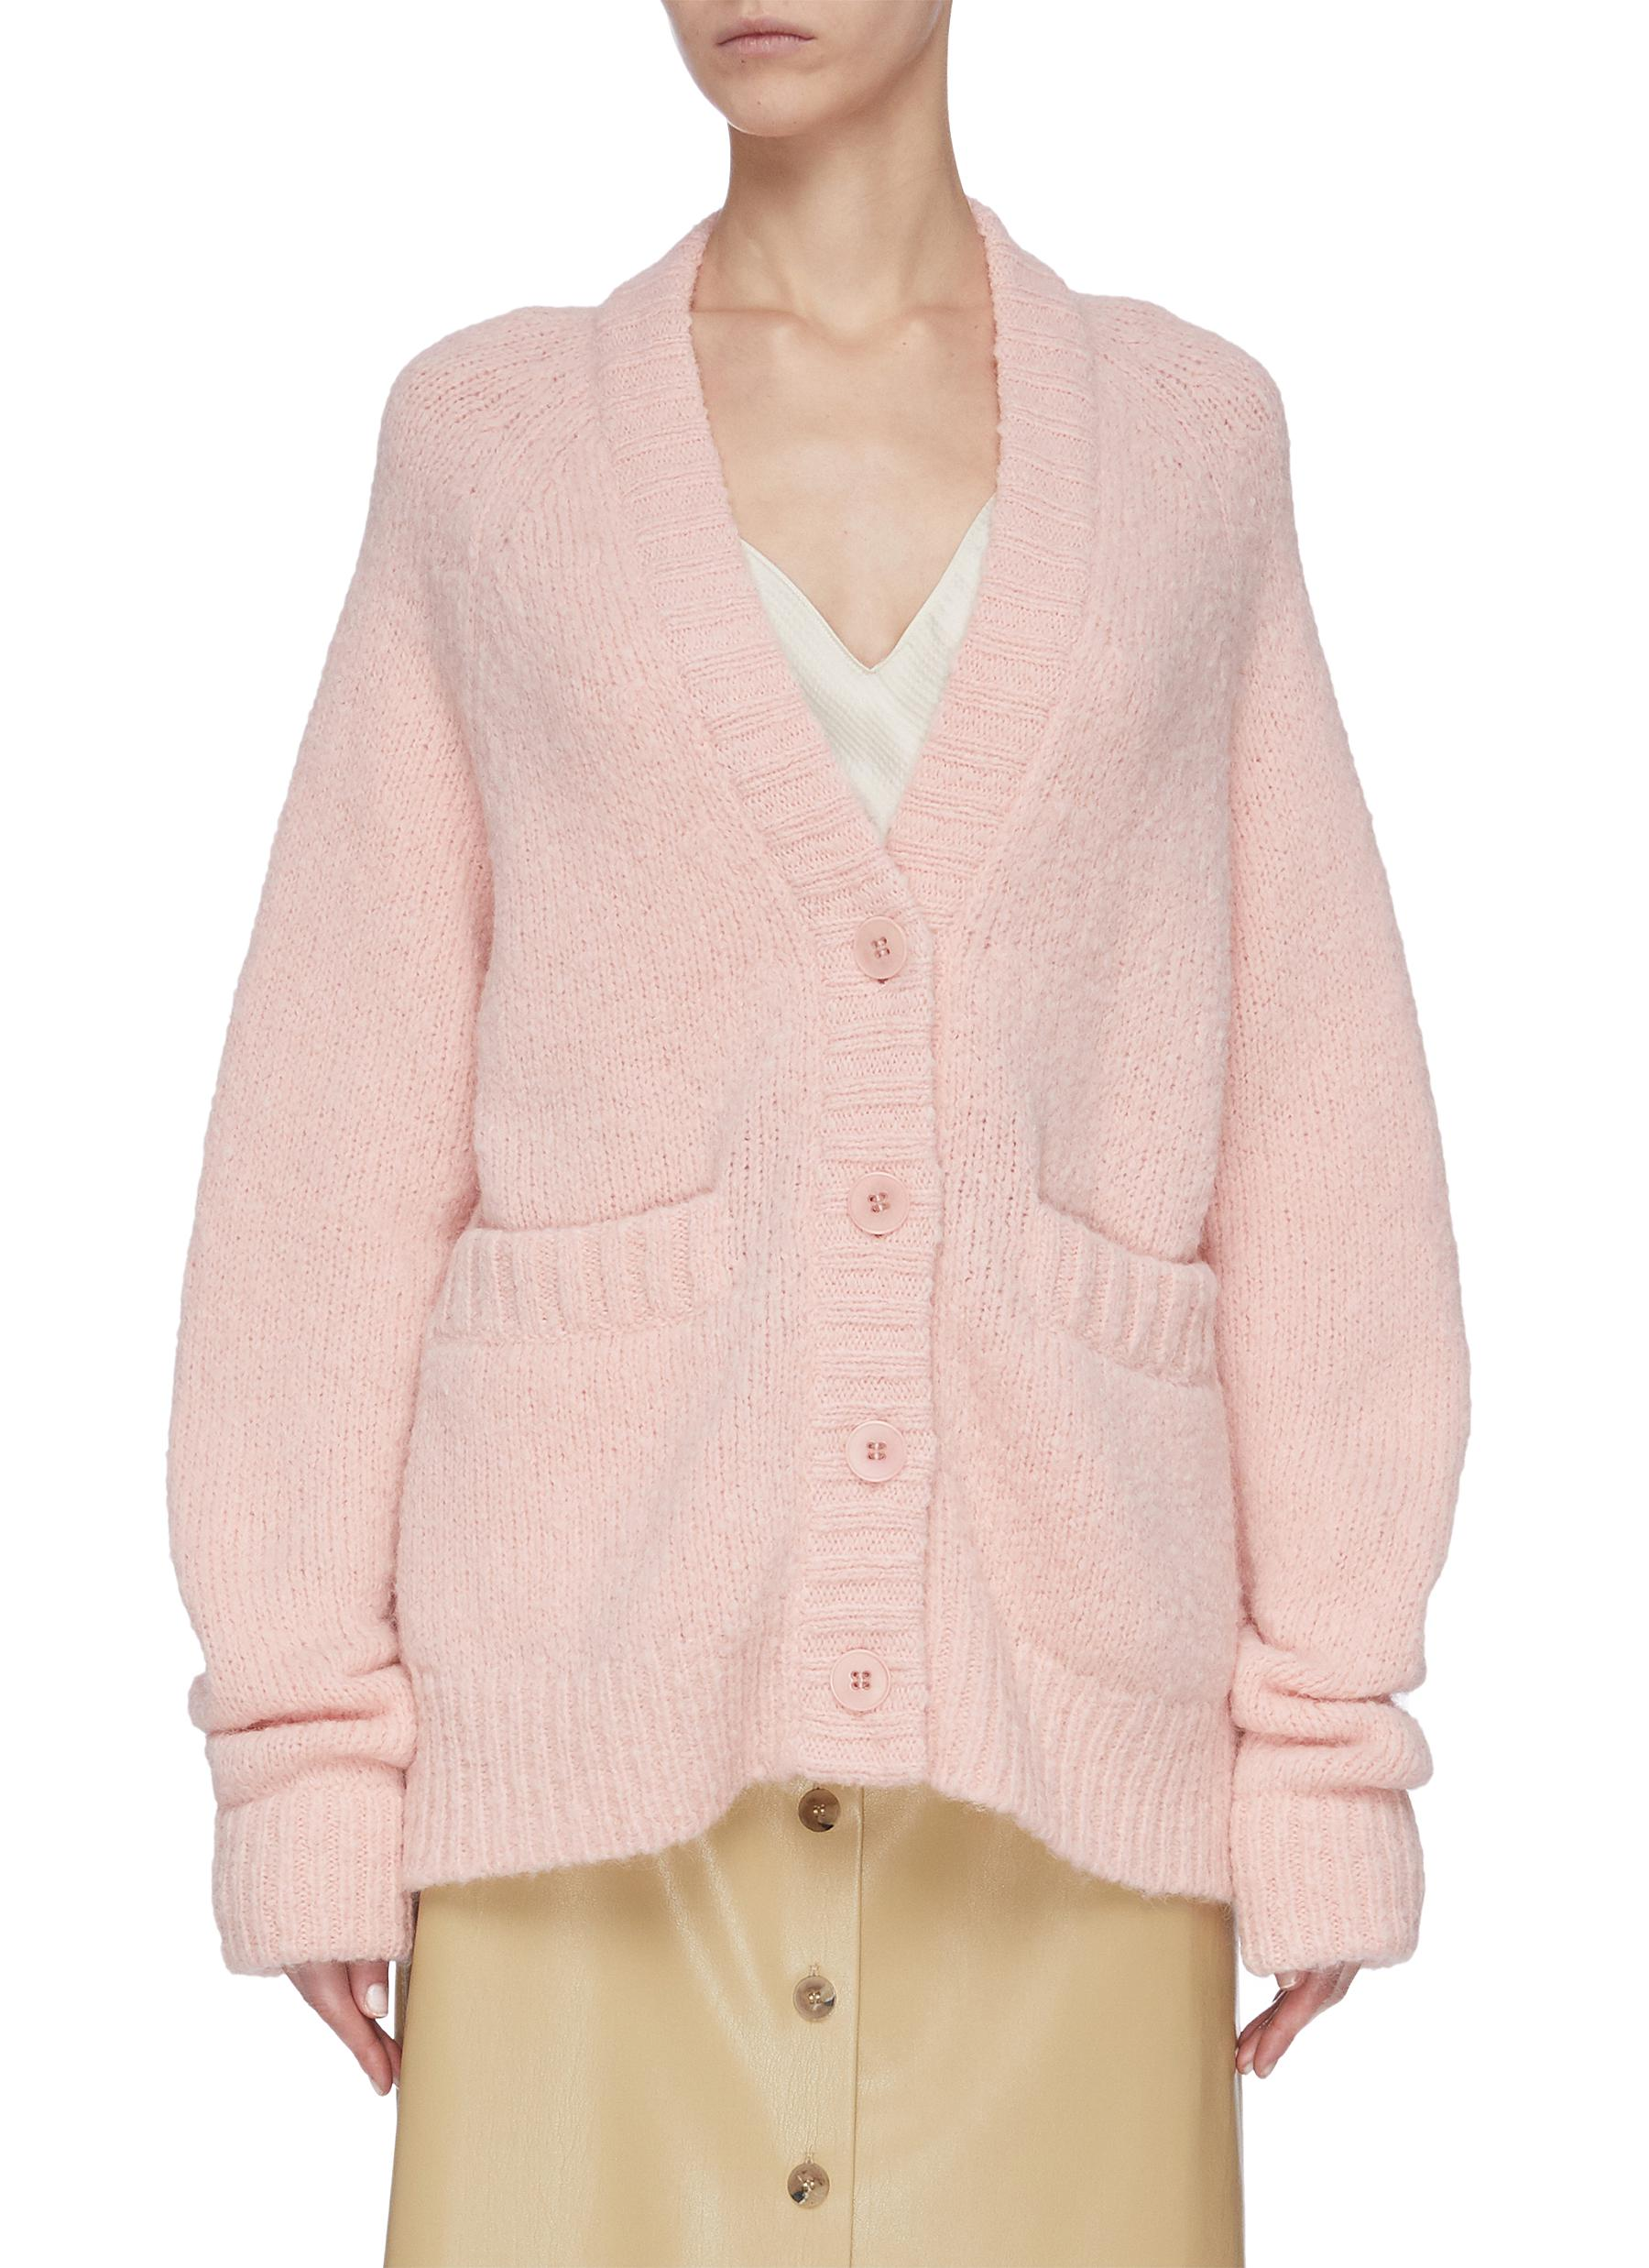 Buy Tibi Knitwear 'Cozette' alpaca wool blend cardigan